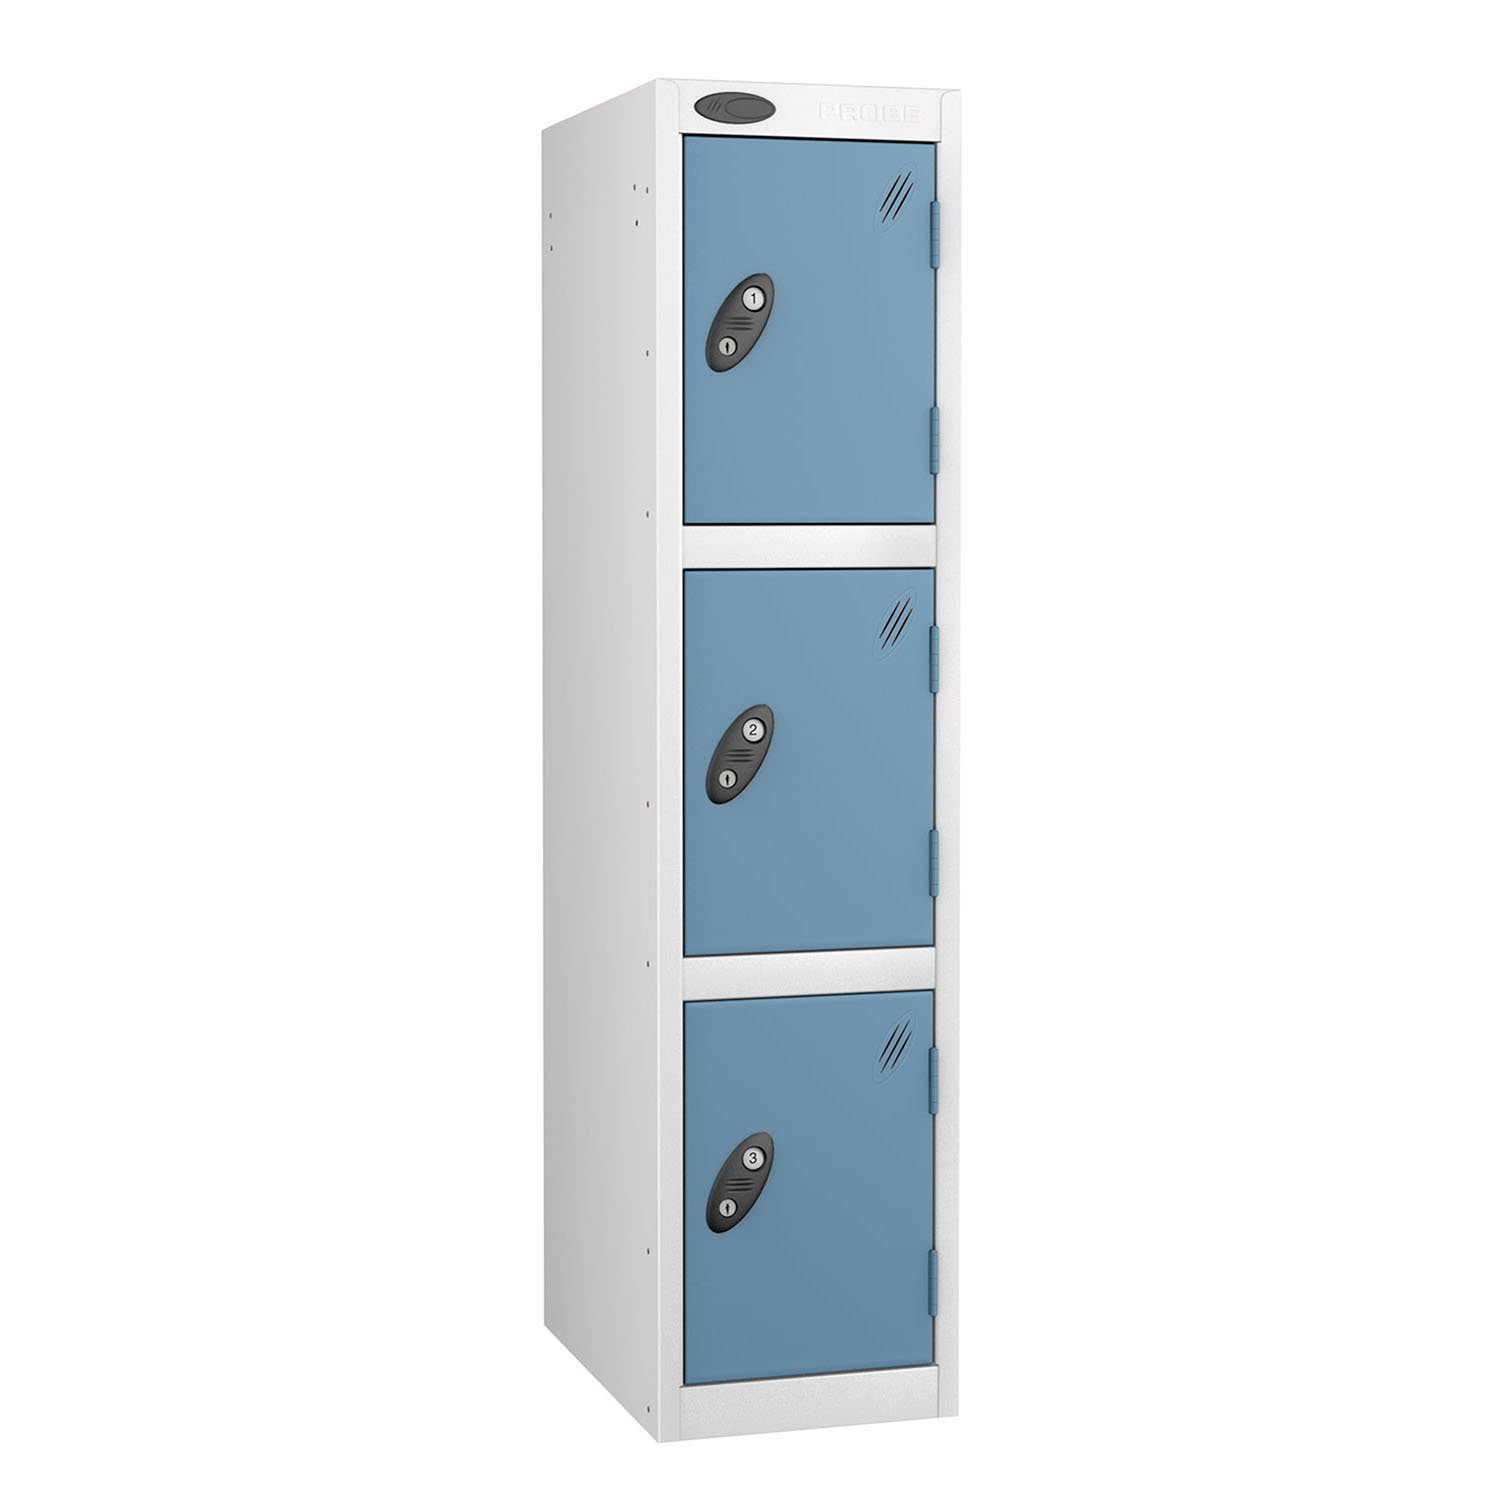 Probe 3 doors junior low locker in white-ocean colour